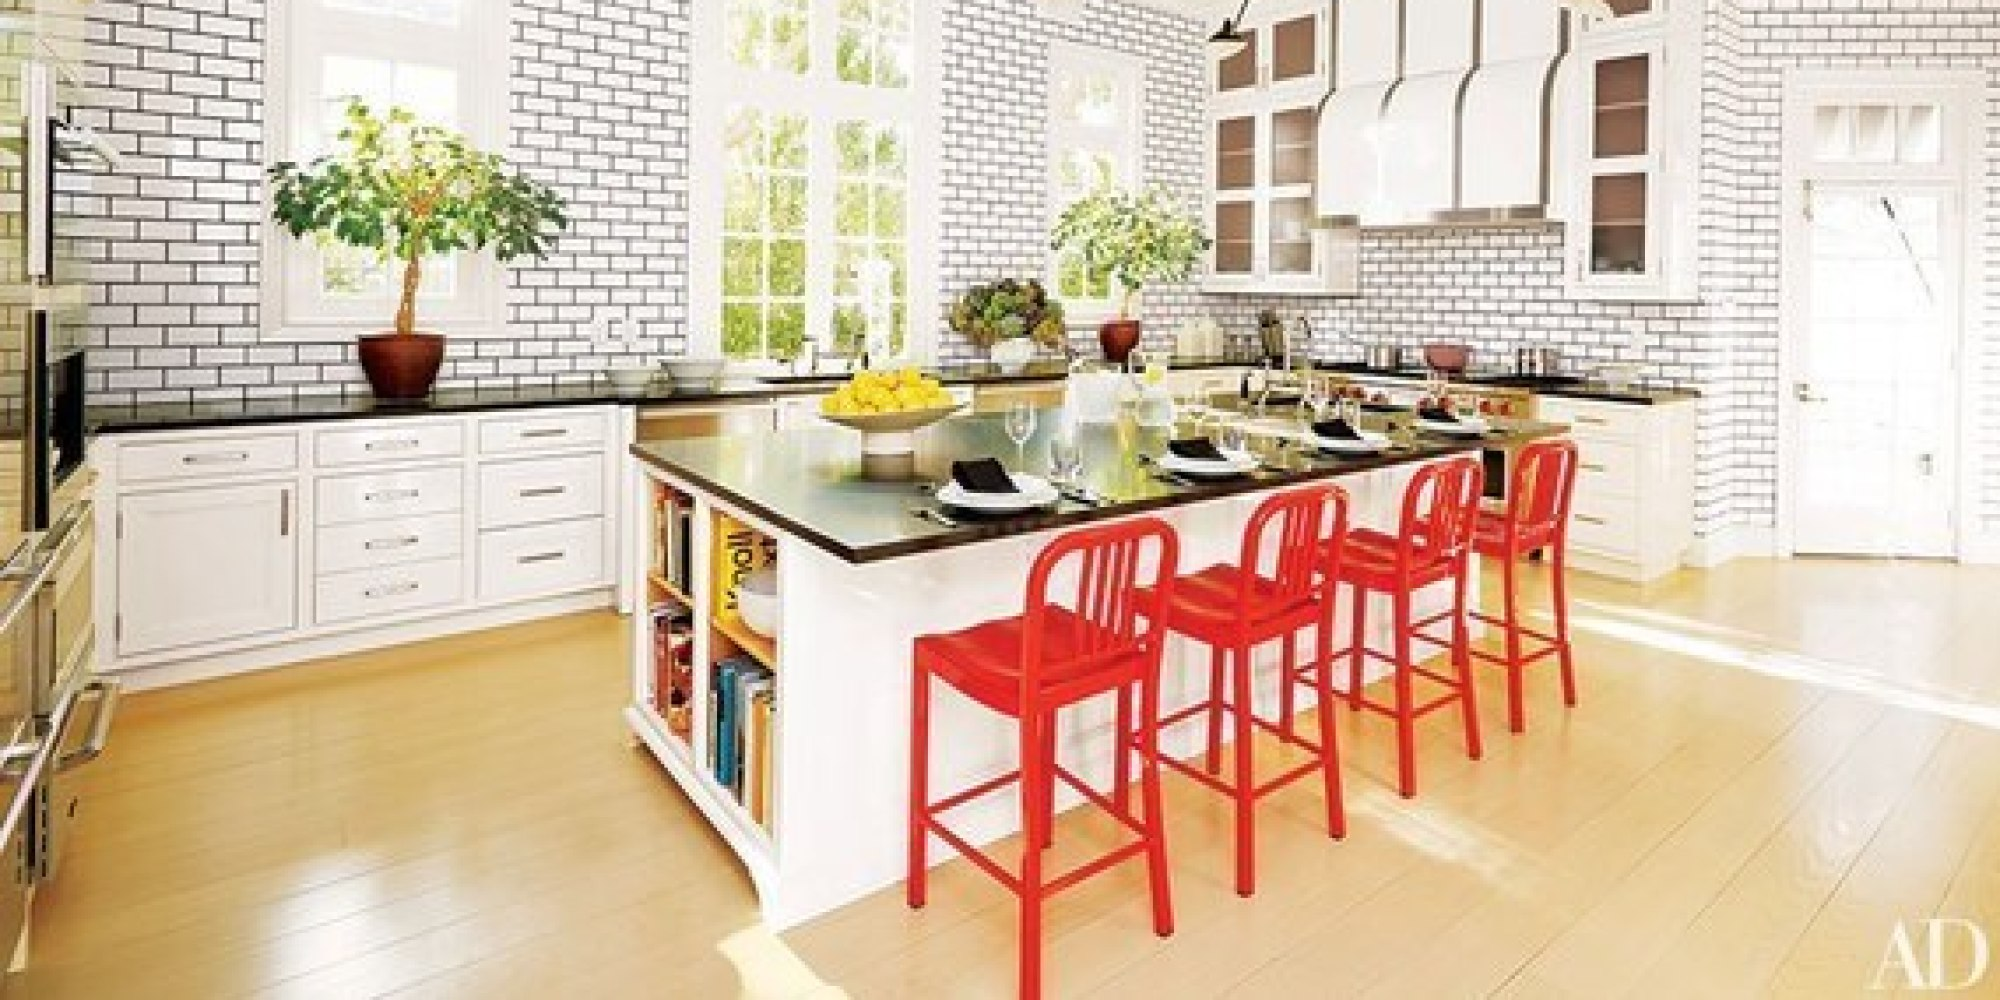 Kitchen Accents Welcome Spring With These 10 Colorful Kitchen Accents Huffpost